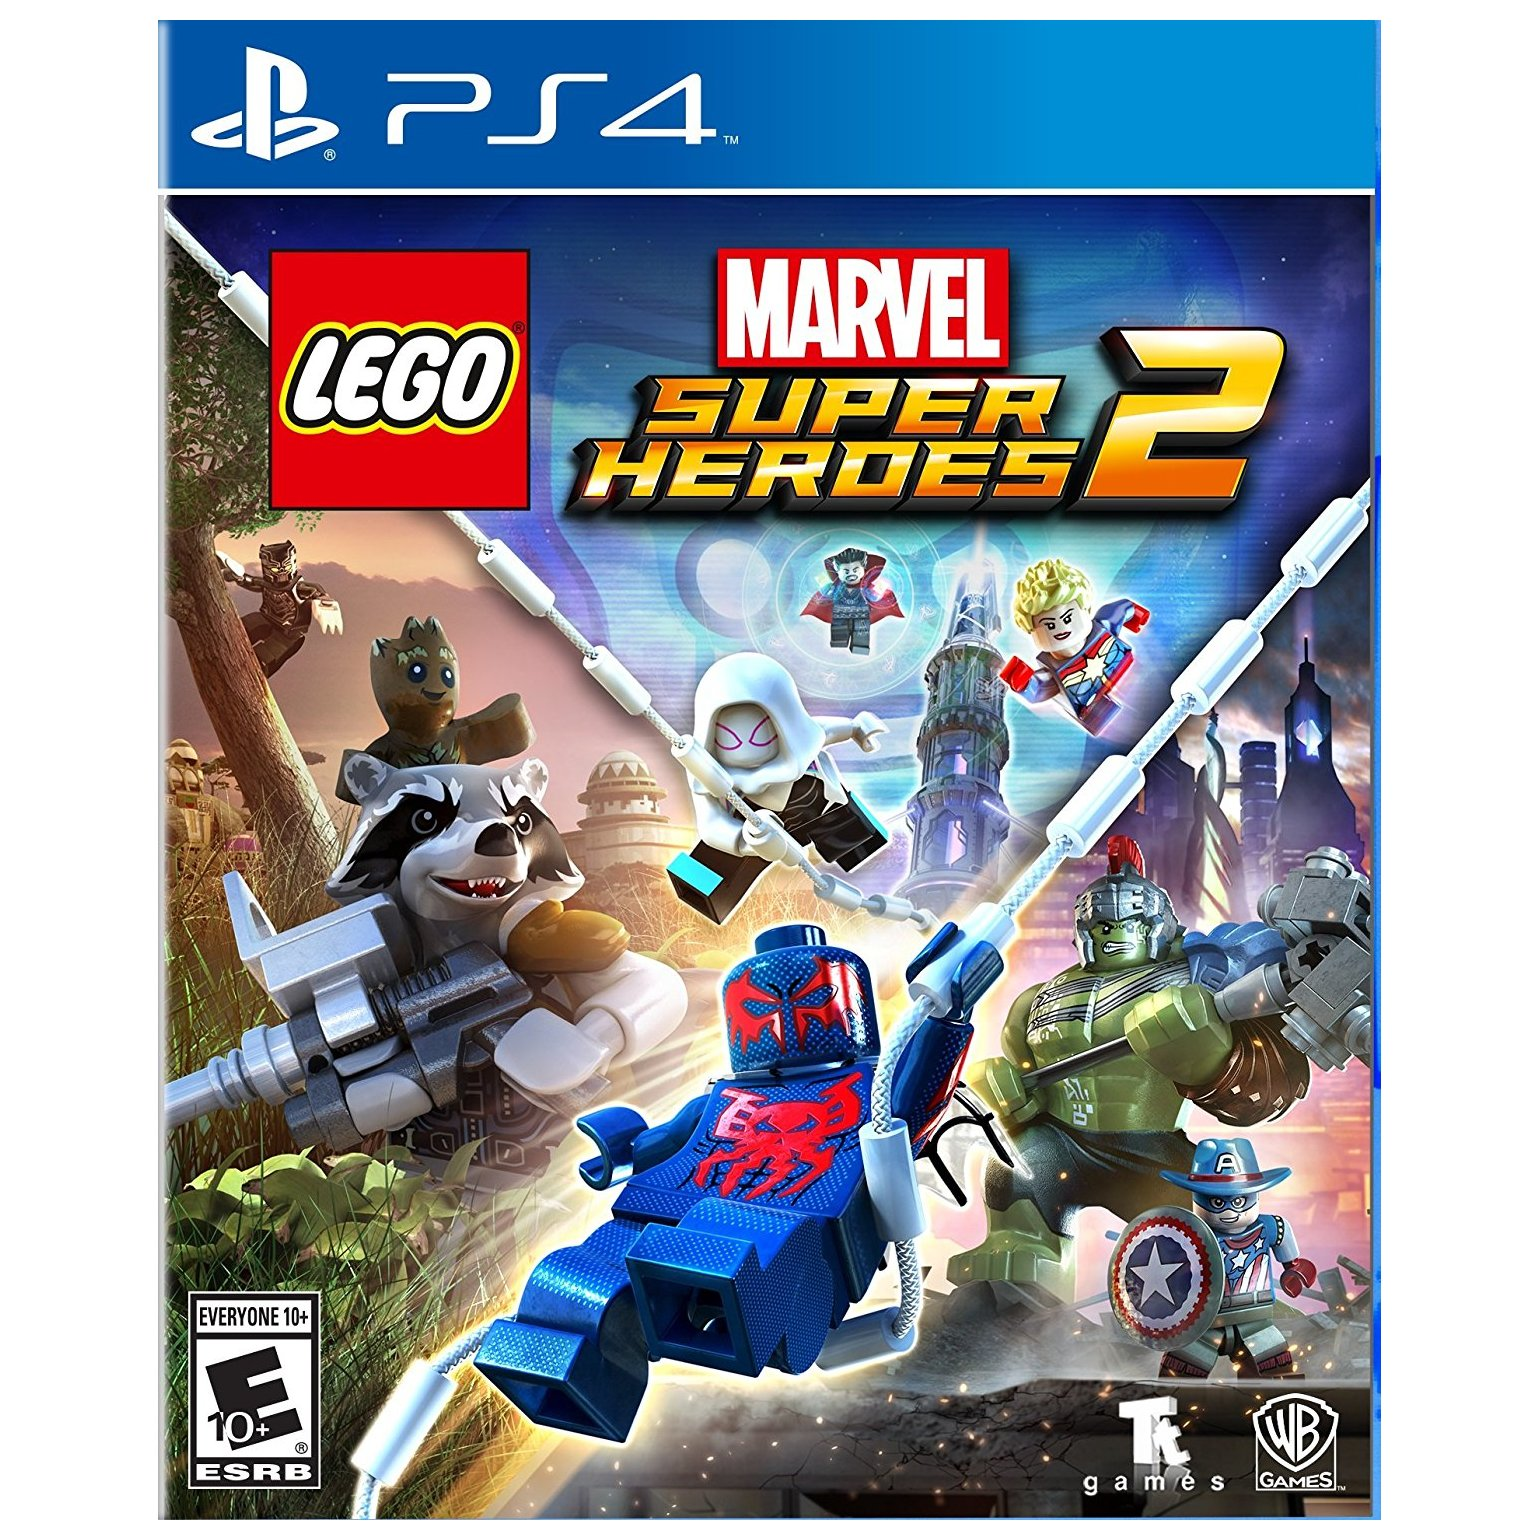 Ps4 Uncharted Drakes Fortune Remastered Game Price Specifications Ps4uncharted 4 A Thief End Reg 3 All Lego Marvel Super Heroes 2